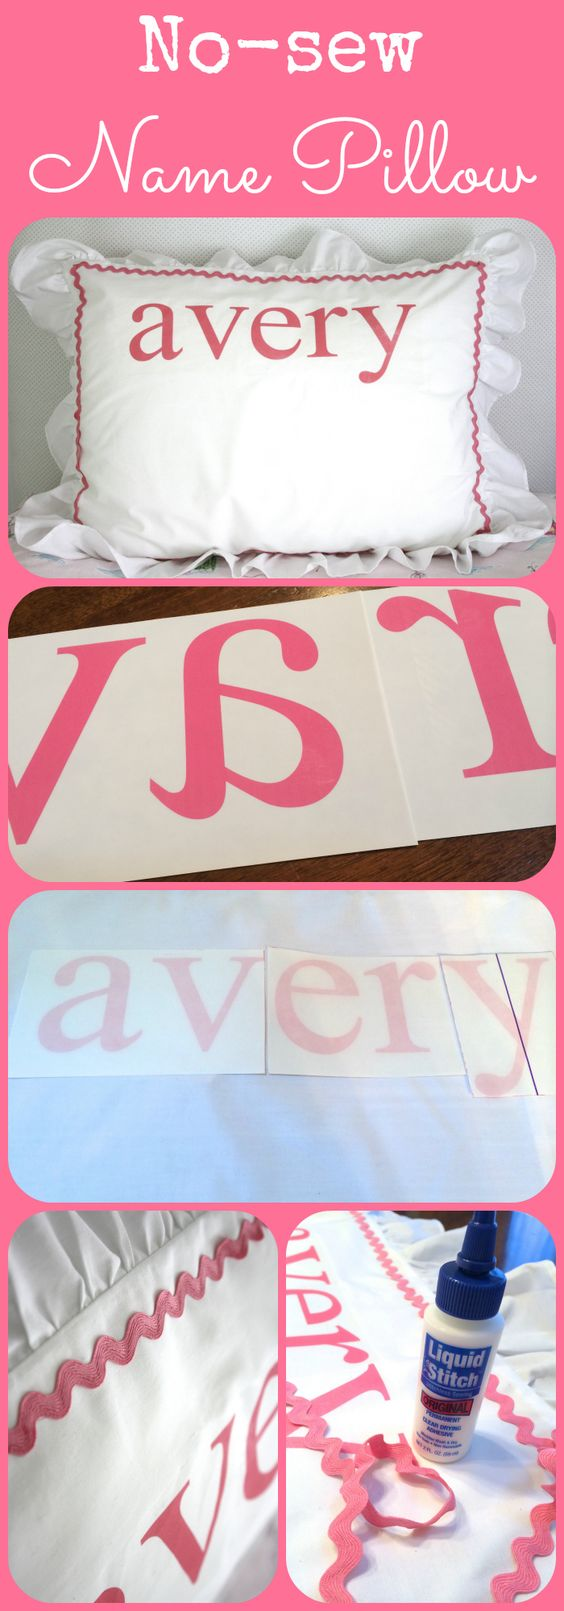 Diy Cute Pillow No Sew : DIY Monogram Pillow Tutorial {no sewing required Pillow Tutorial, Personalized Pillows and Lawyers